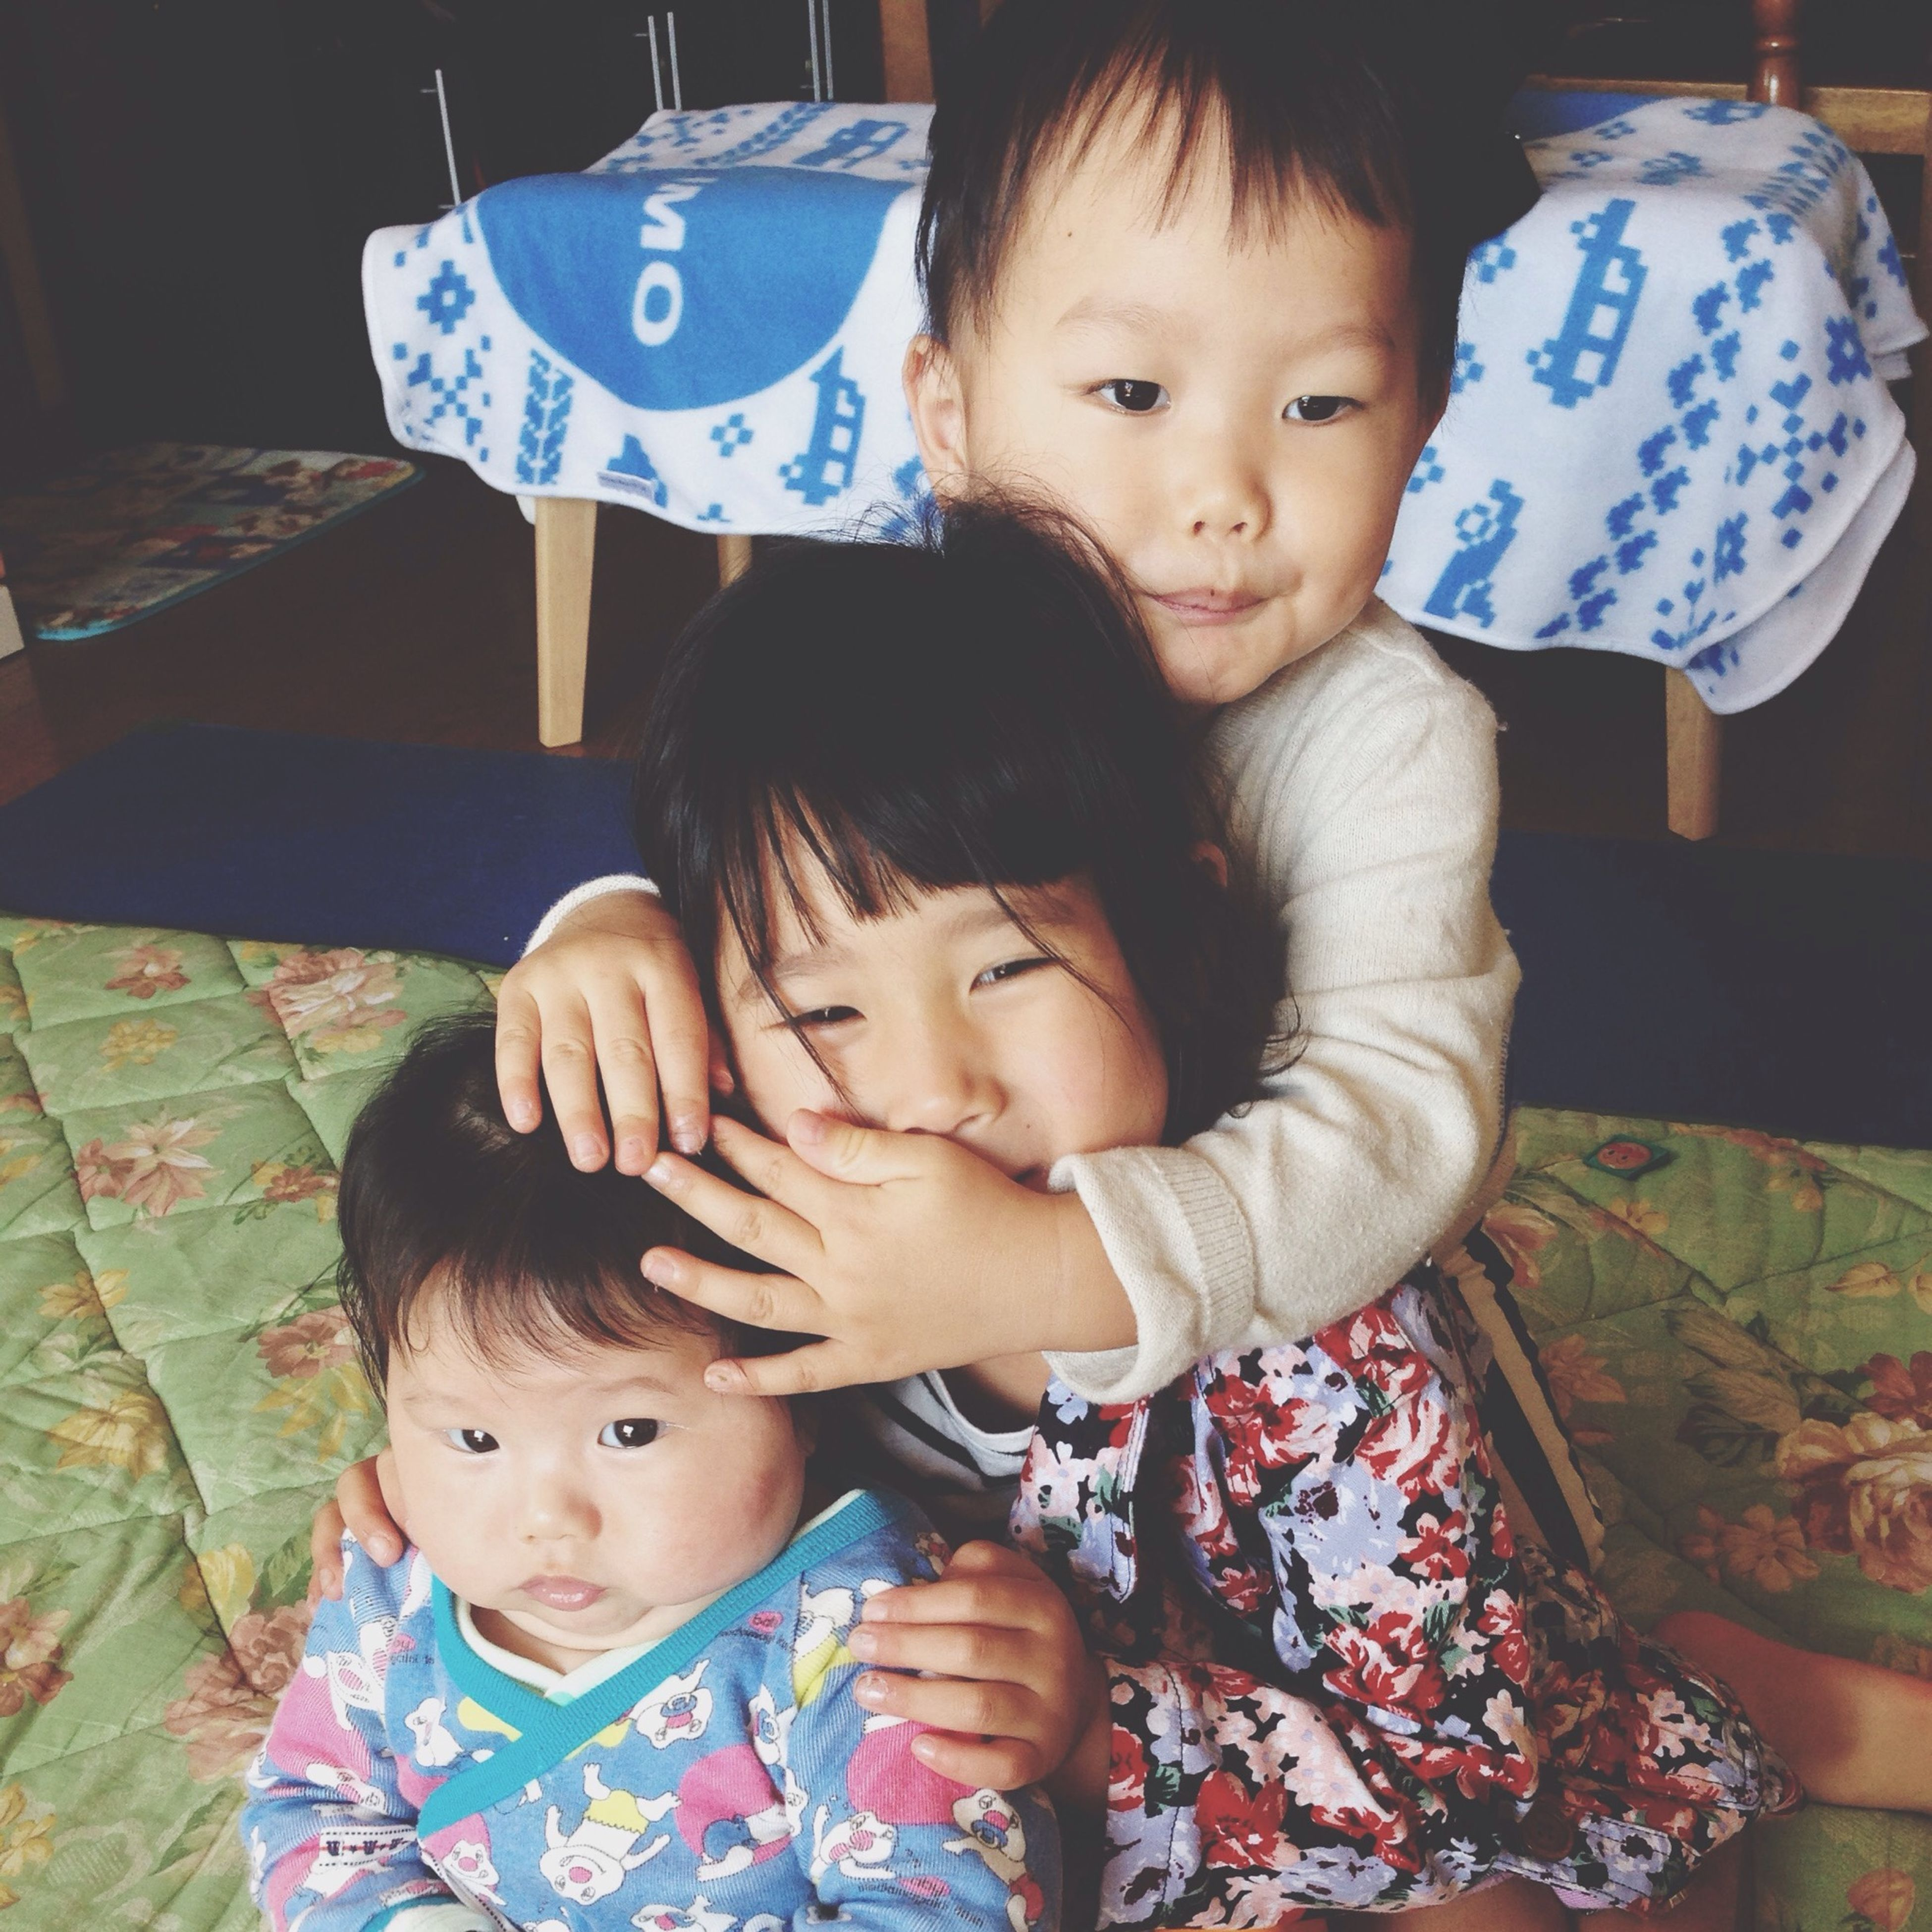 childhood, elementary age, innocence, cute, person, boys, girls, baby, toddler, lifestyles, babyhood, indoors, bonding, leisure activity, togetherness, family, love